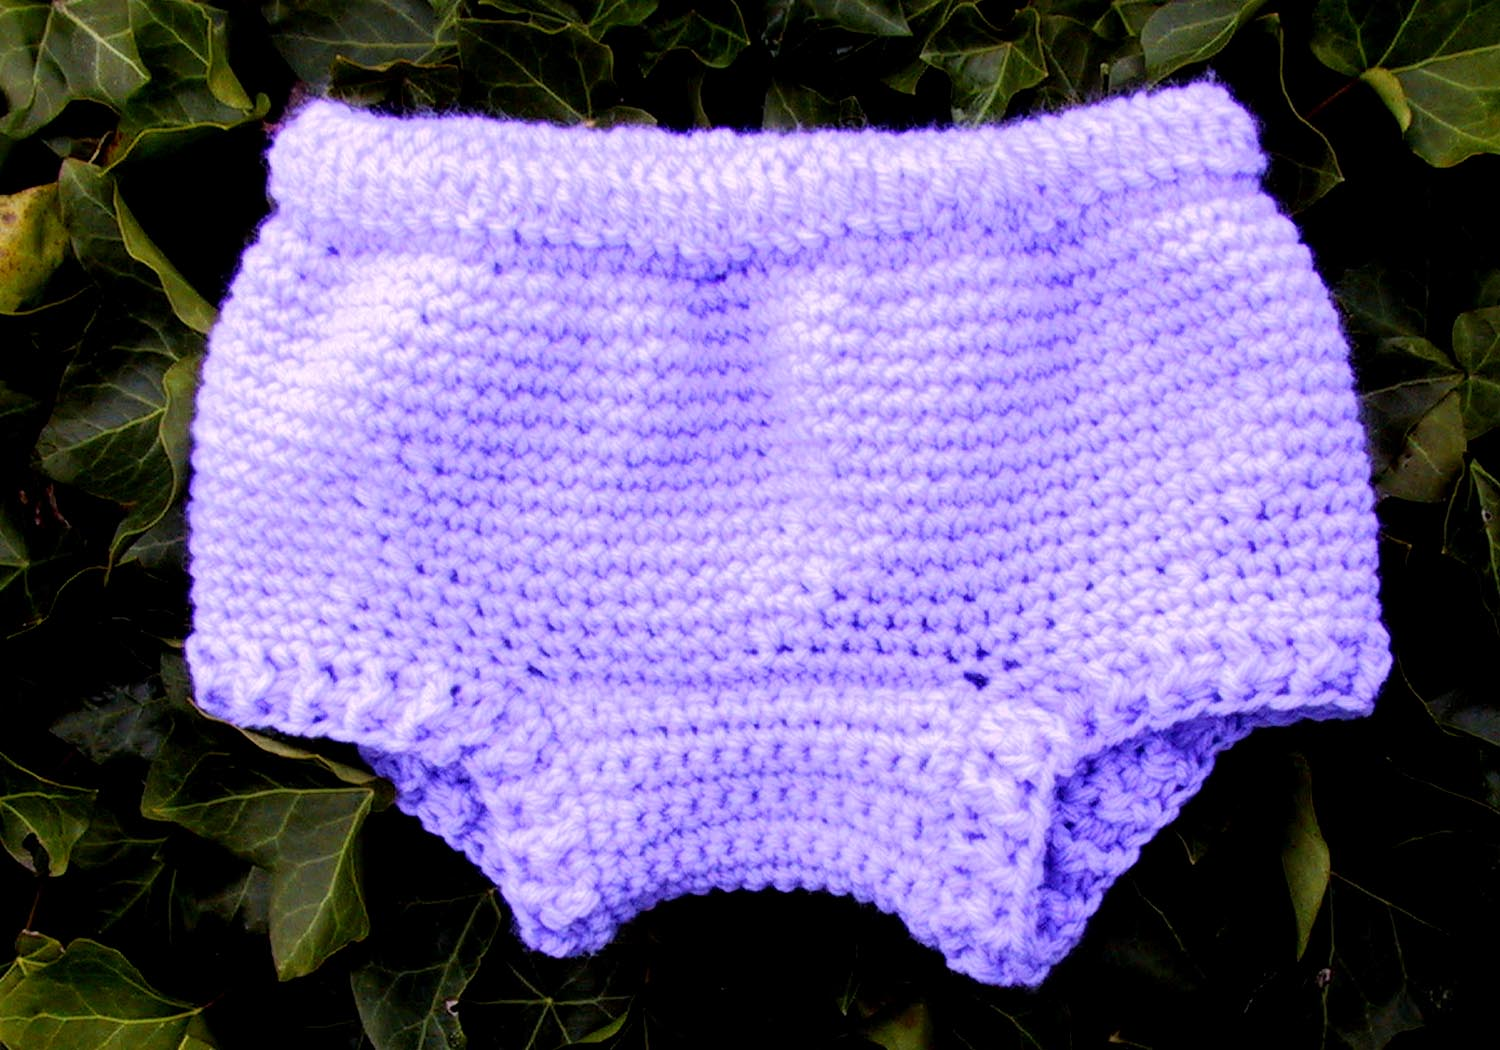 Crochet Diaper Cover Pattern ? Catalog of Patterns